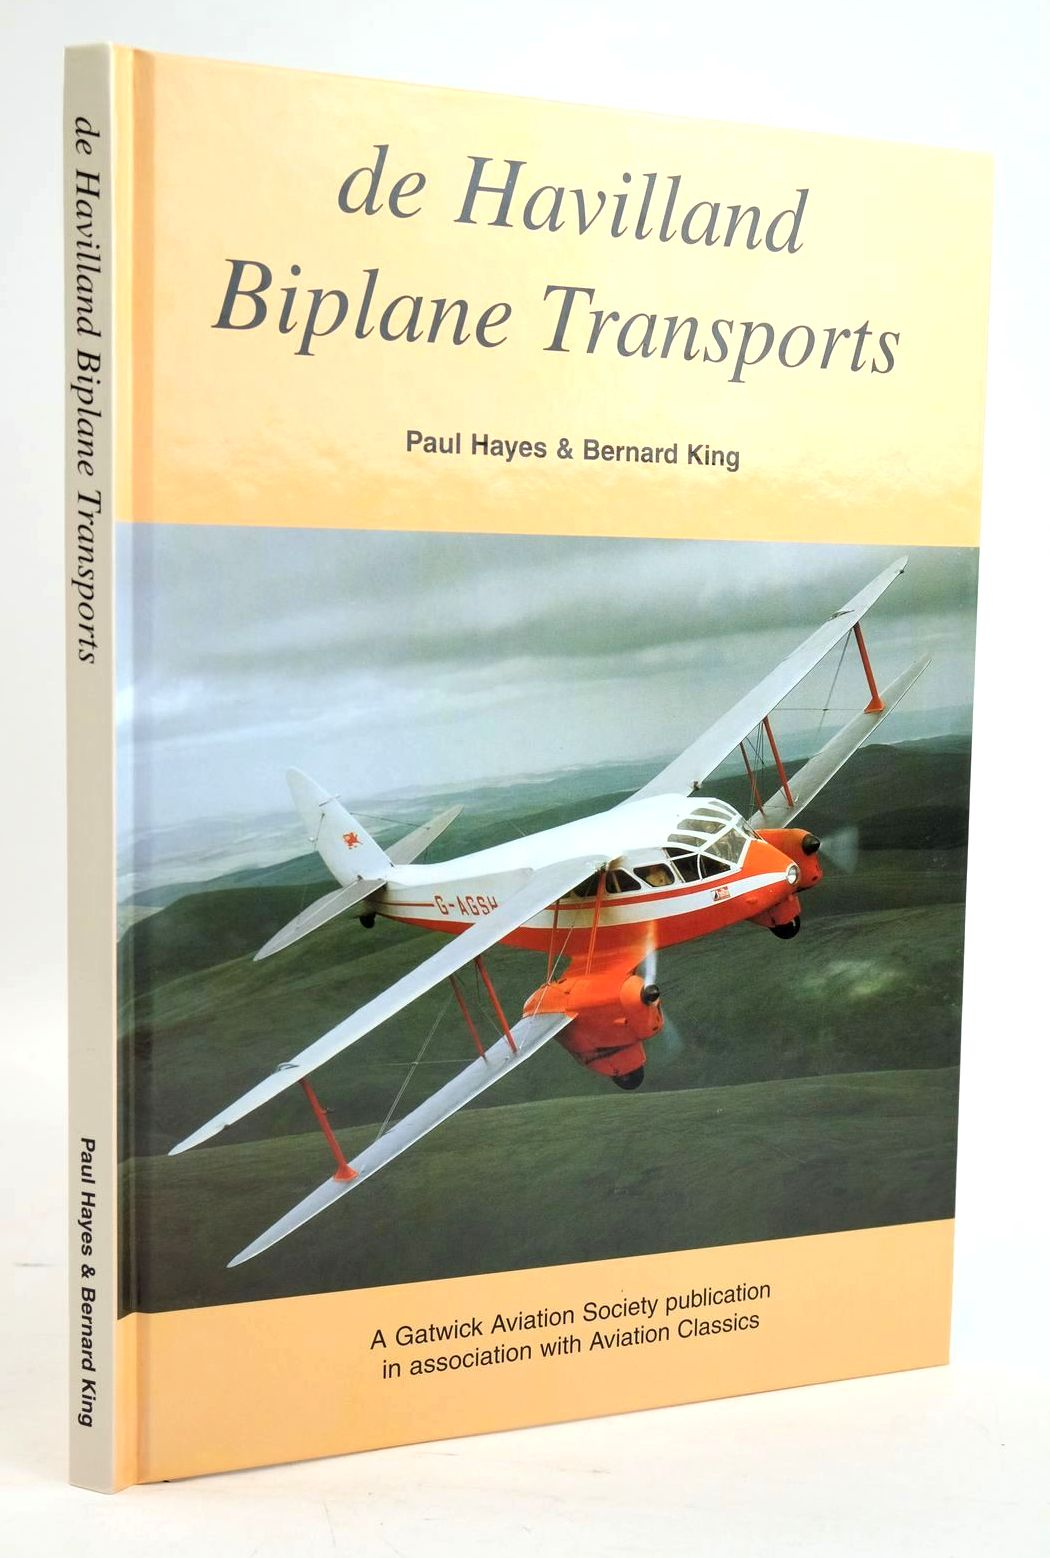 Photo of DE HAVILLAND BIPLANE TRANSPORTS written by Hayes, Paul King, Bernard published by Gatwick Aviation Society (STOCK CODE: 1319614)  for sale by Stella & Rose's Books